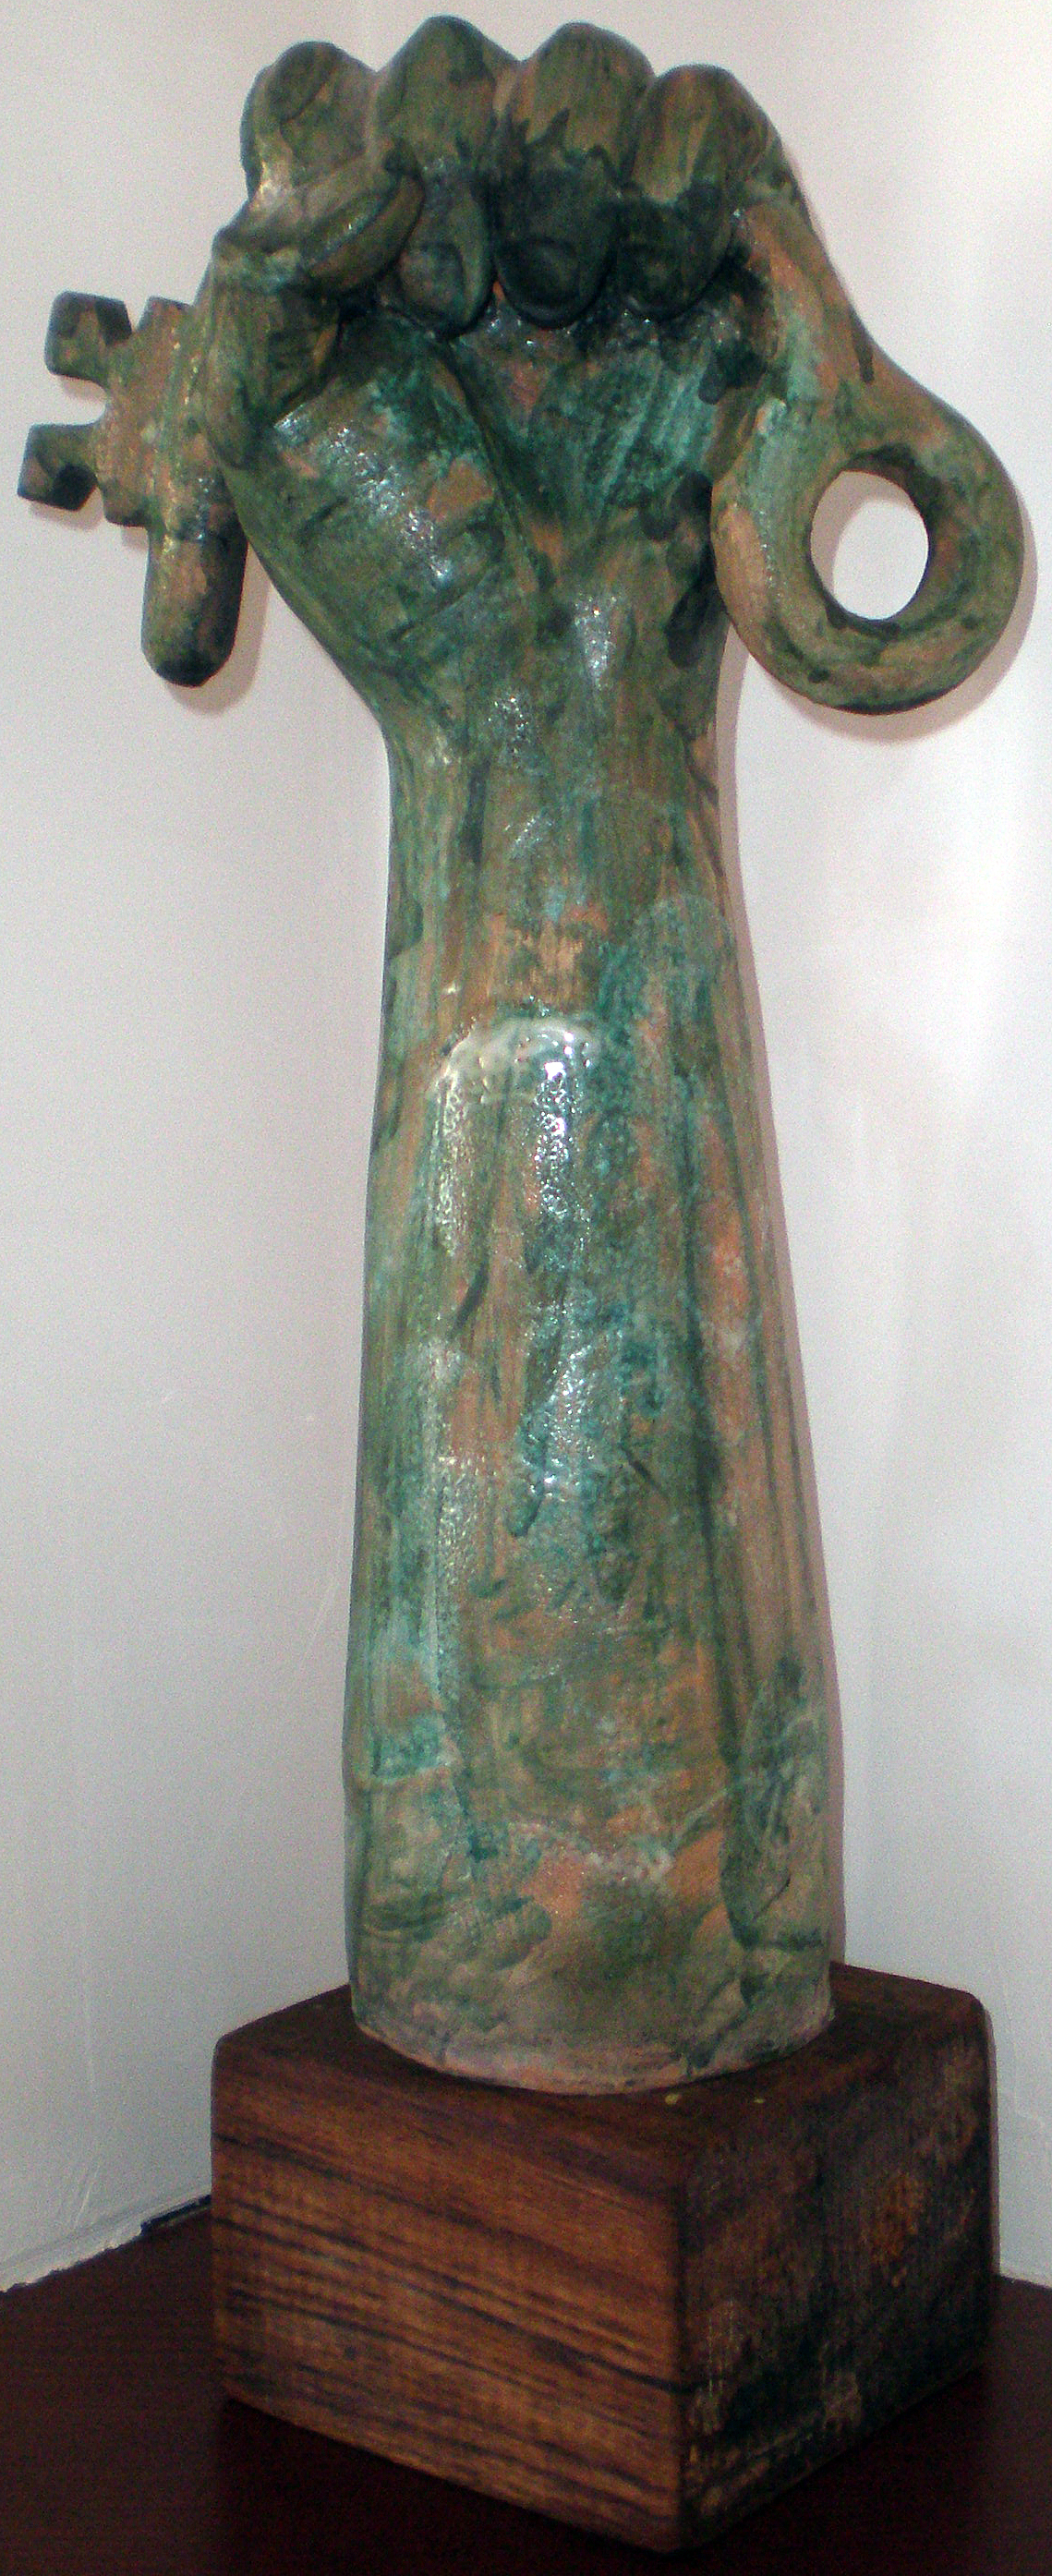 Dopo la rivouzione (After the revolution), 1995 ceramica artistica (ceramic art), h cm 50, Pio Mastrogiacomo, Acerno (SA).